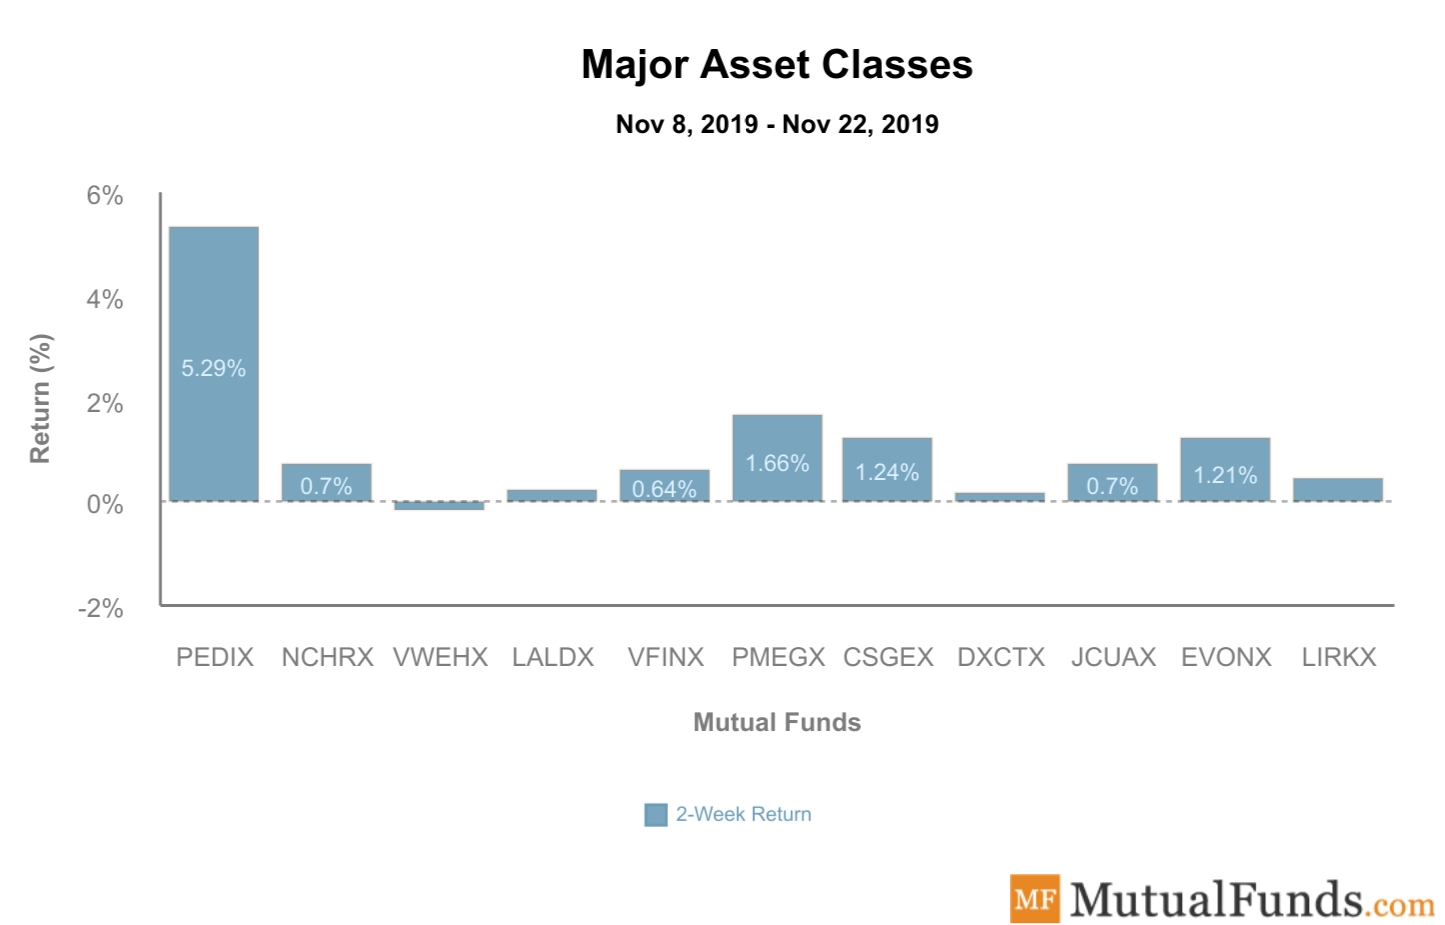 Major Asset Classes Performance Nov 26, 2019